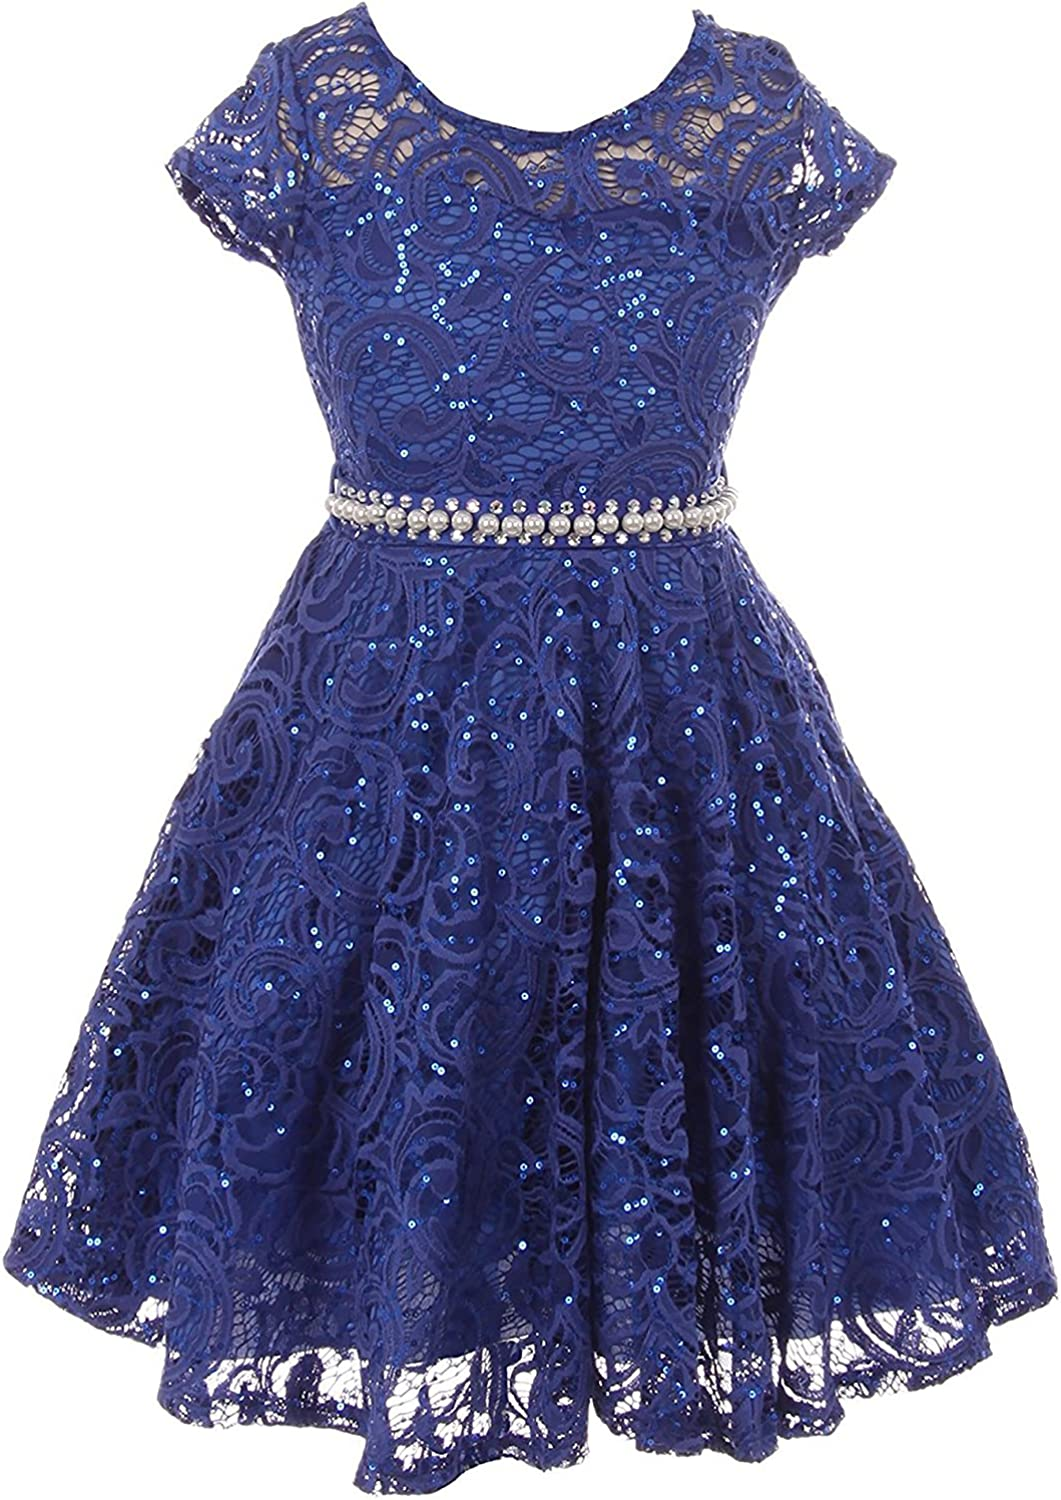 iGirlDress Cap Sleeve Floral Lace Glitter Pearl Holiday Party Flower Girl Dress Size 4-16